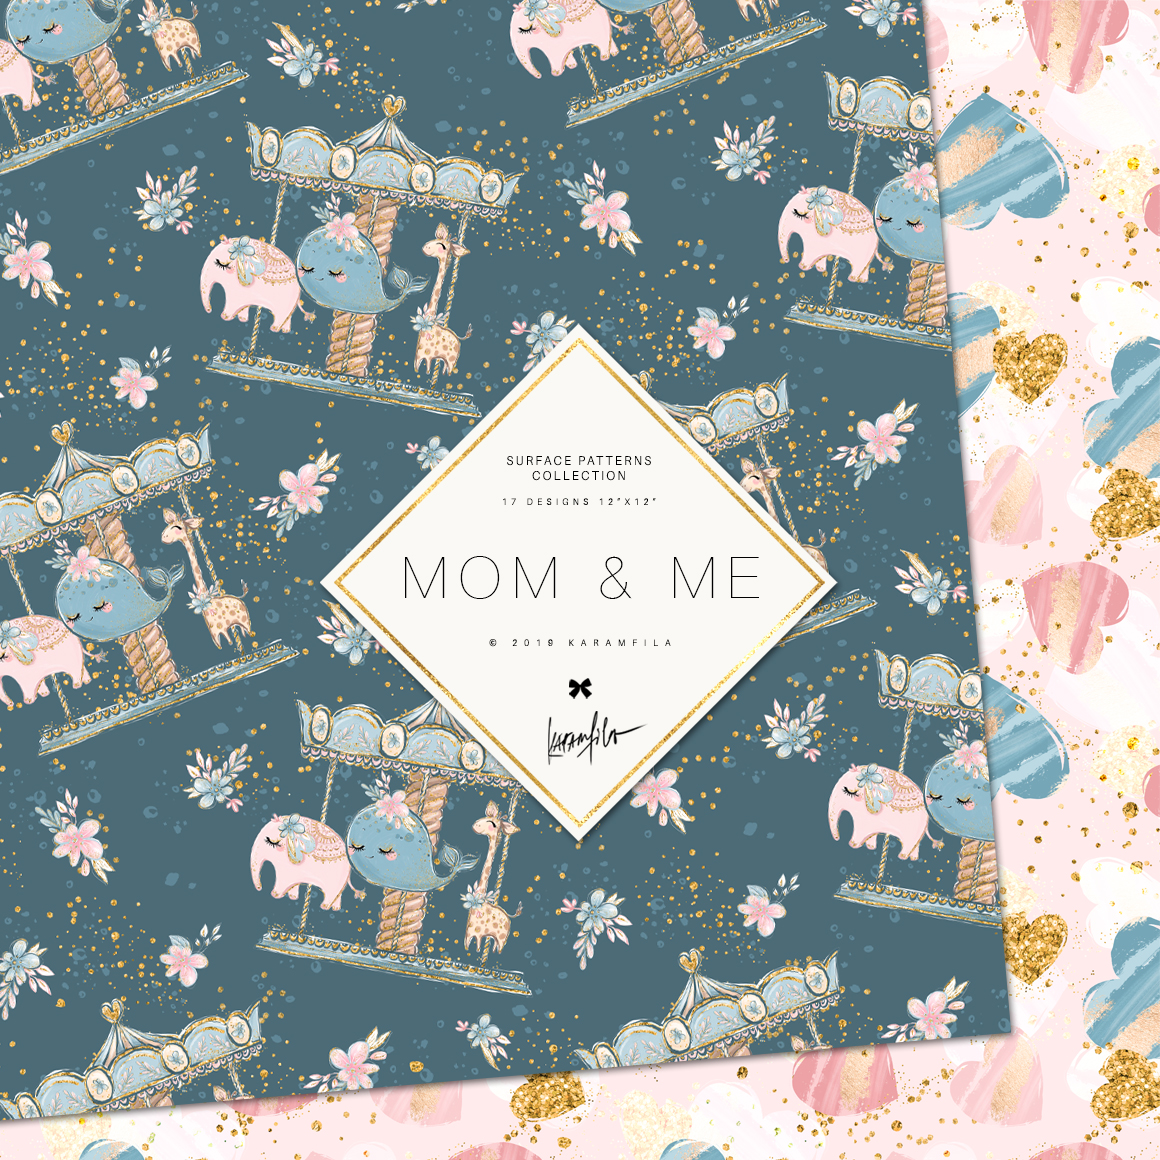 Baby Animals Mother's Day Patterns example image 9